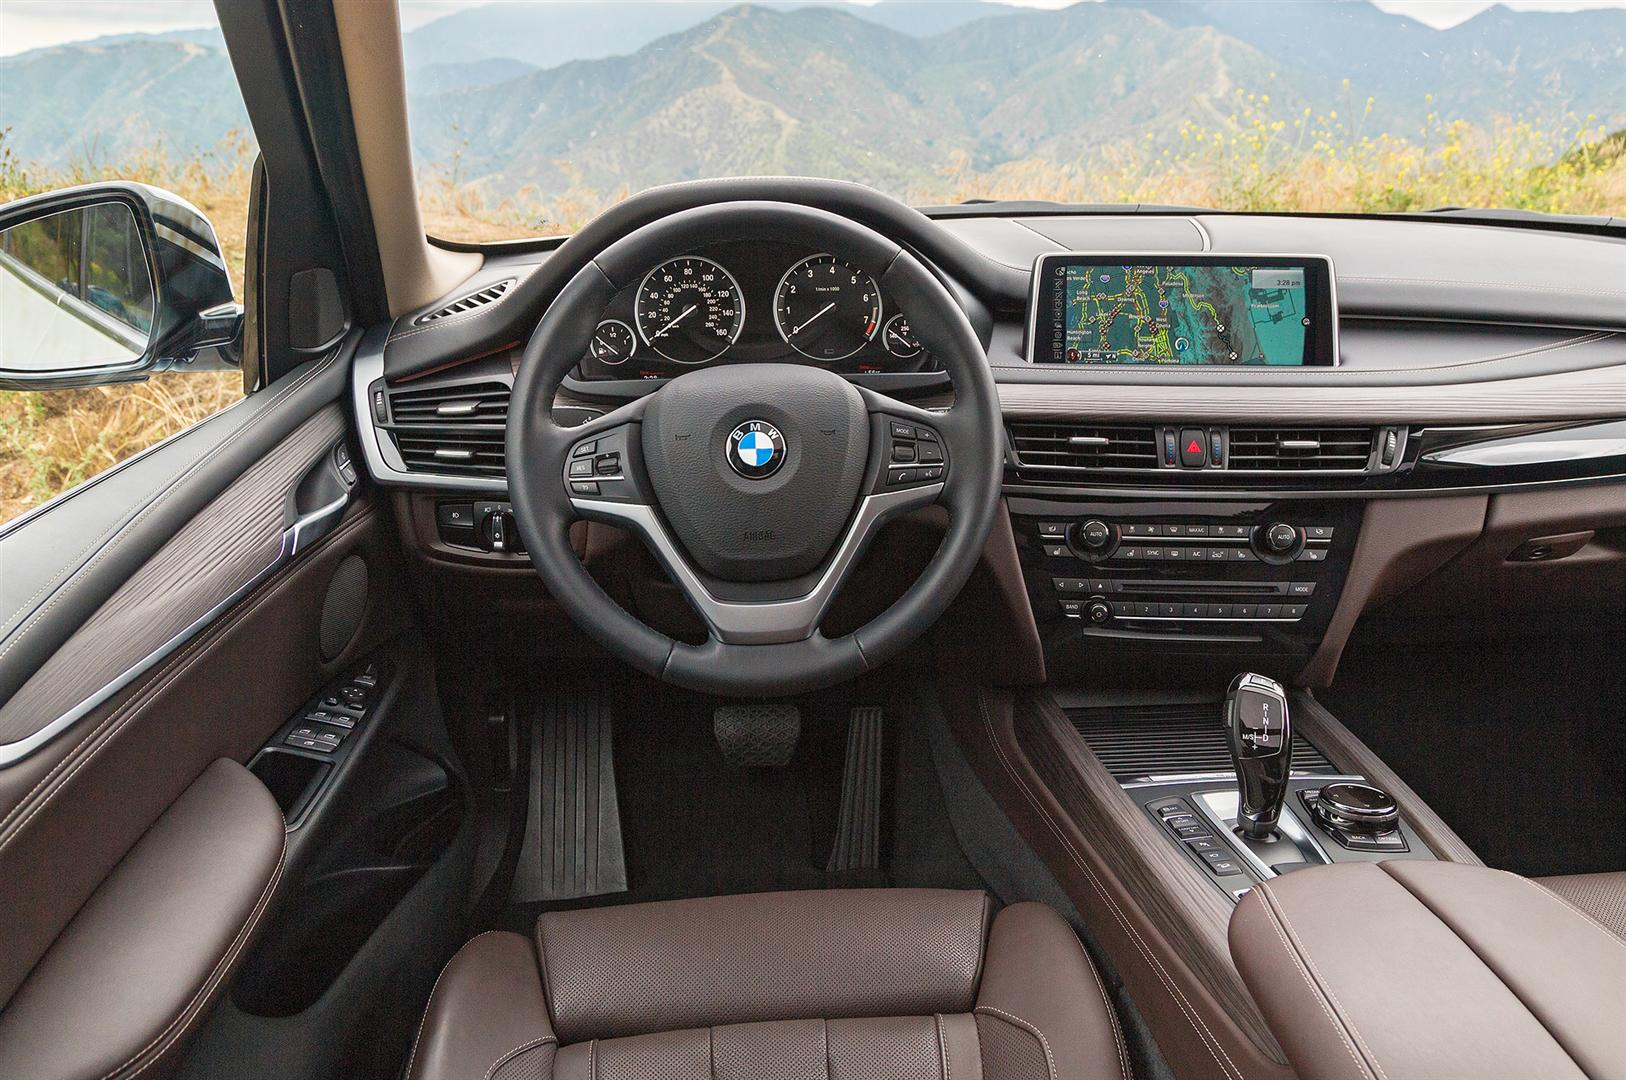 2019 BMW X5 Interior Rendering